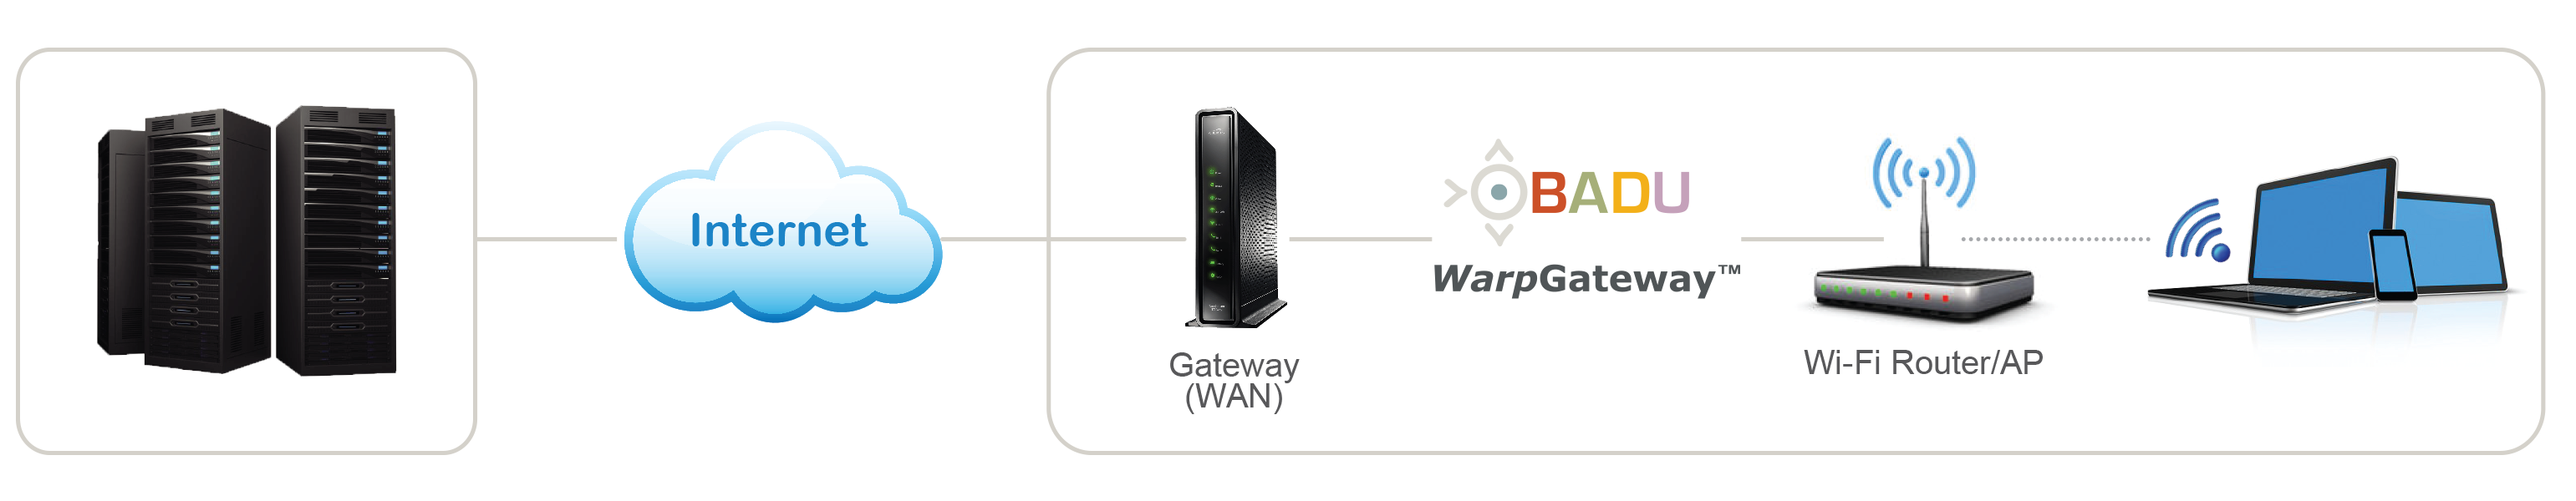 WarpGateway Deployment Diagram